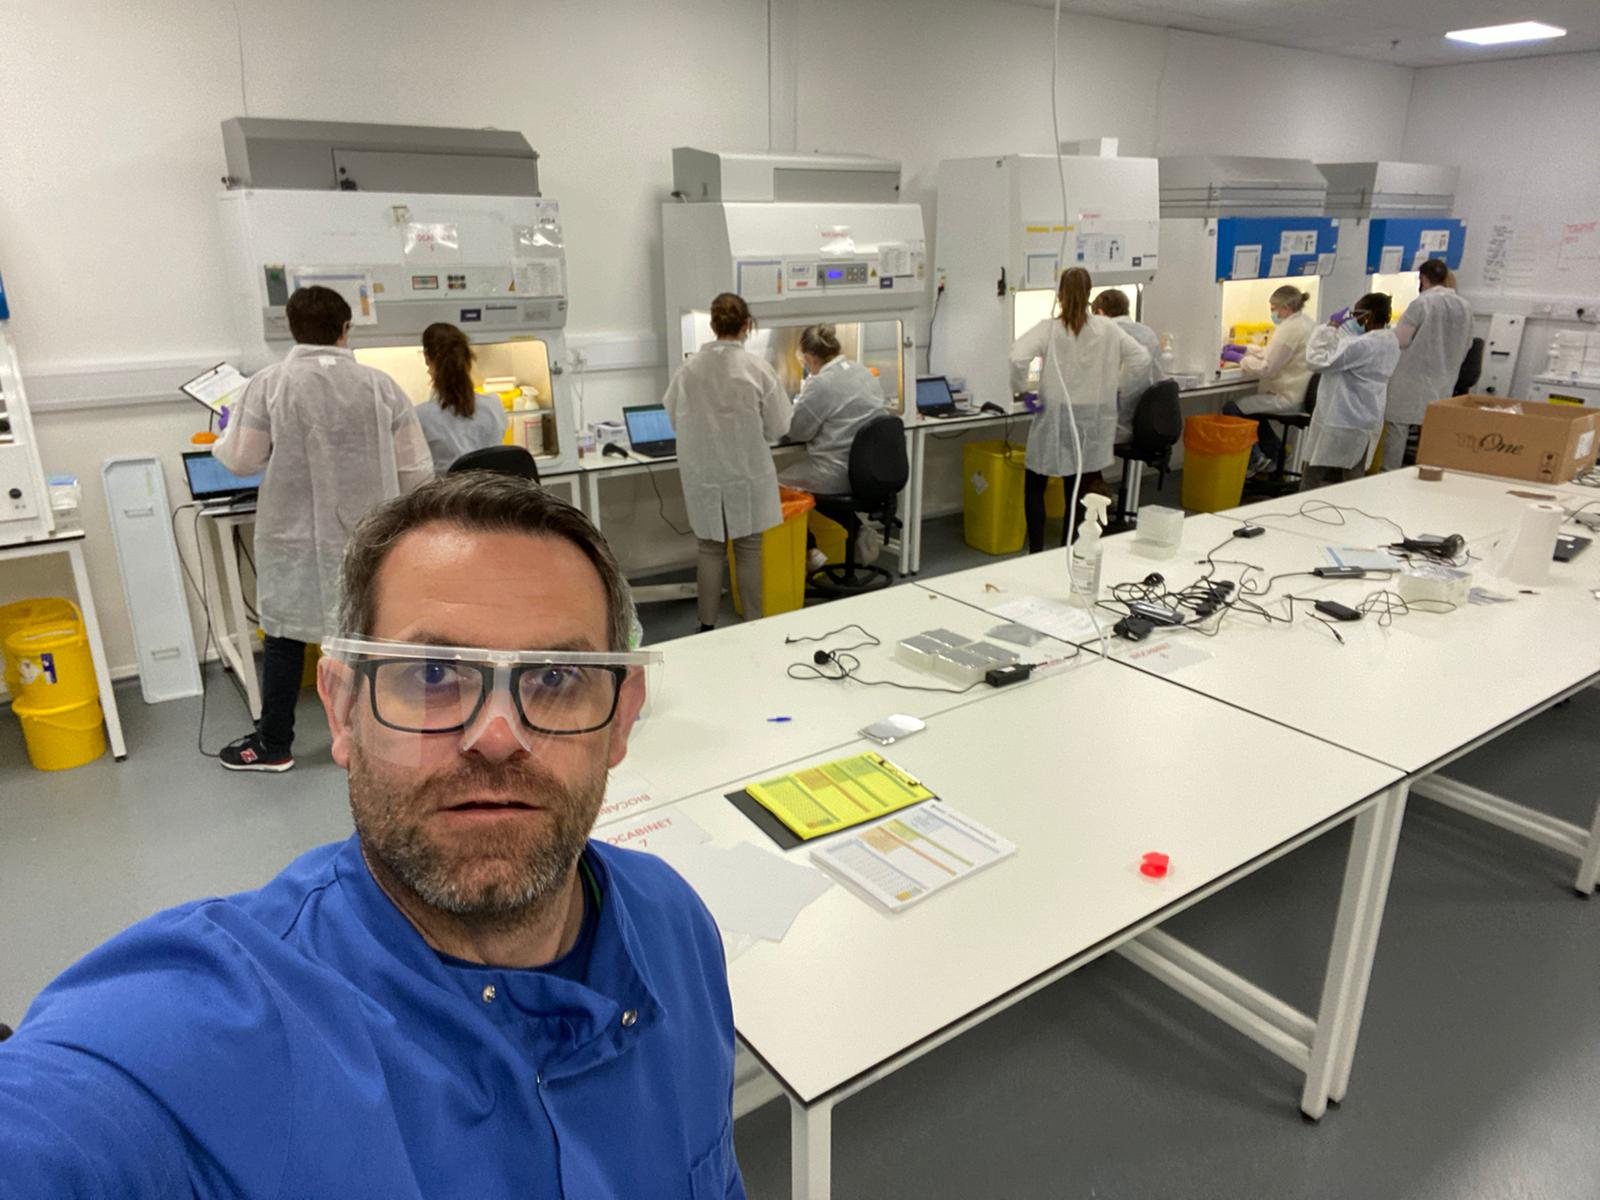 Professor Alan McNally at work in the lab